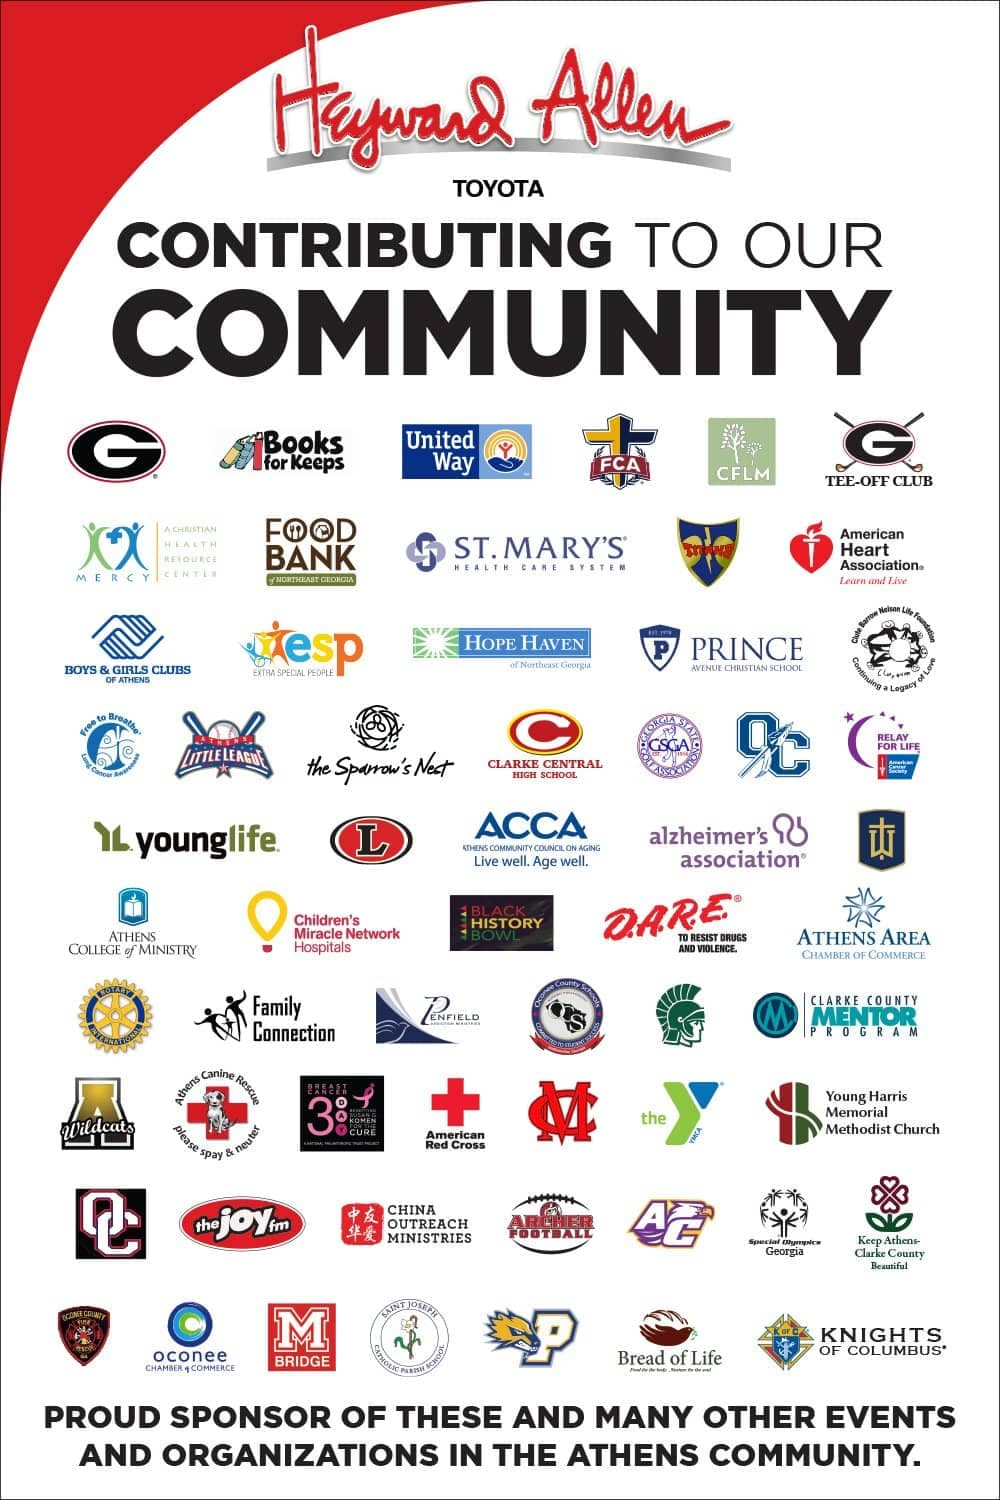 Community Involvement | Heyward Allen Toyota